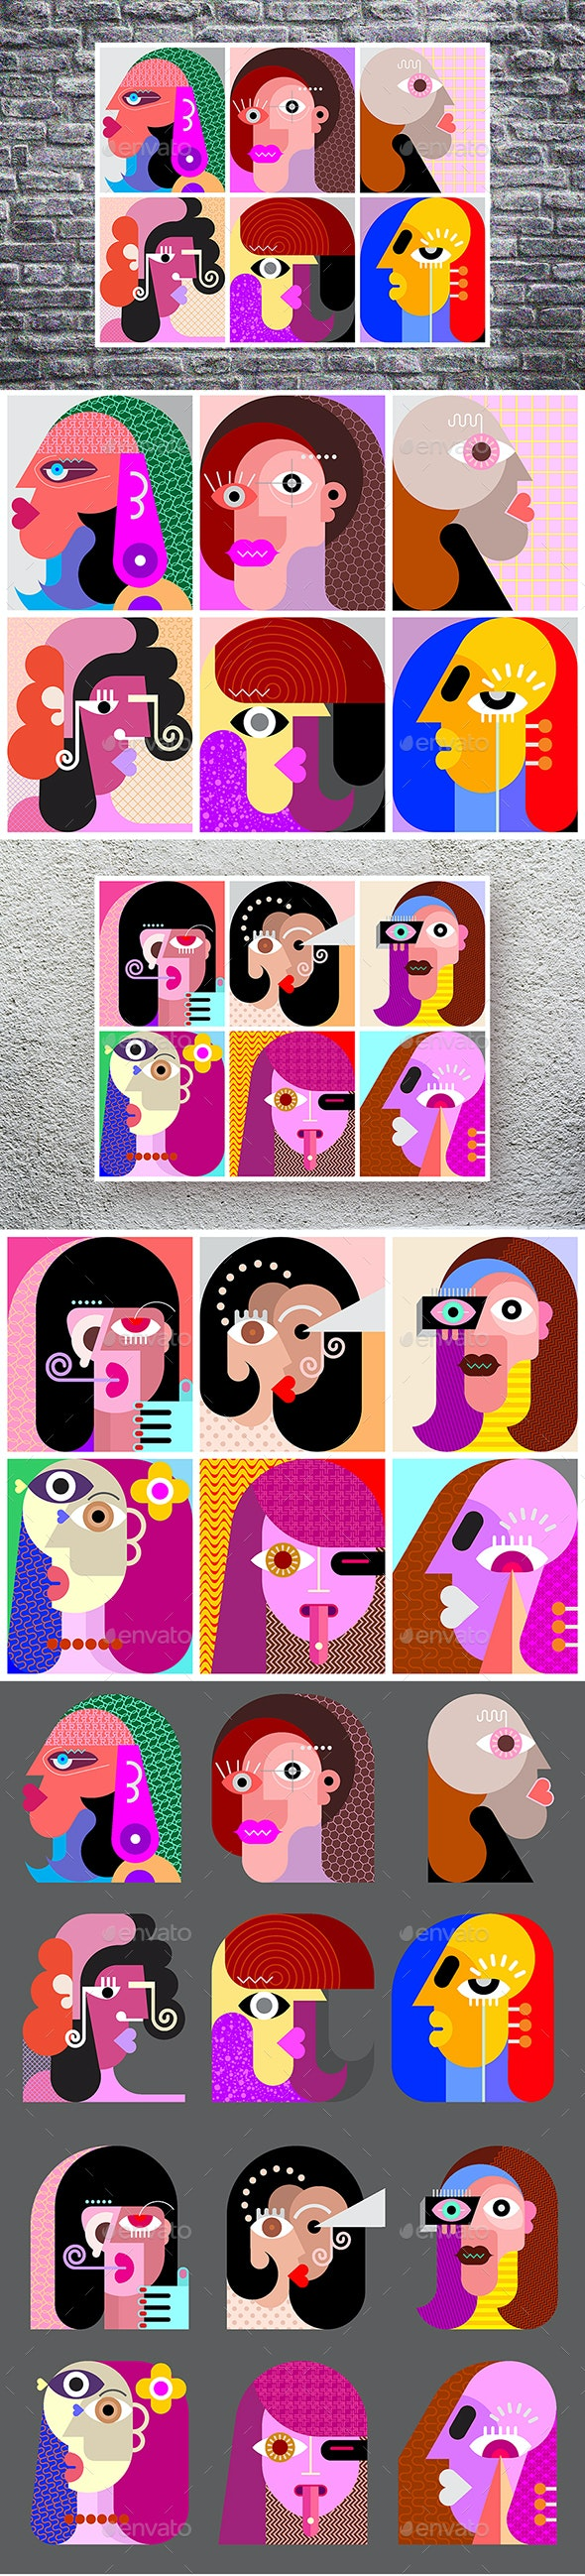 Twelve Abstract Vector Avatars - People Characters